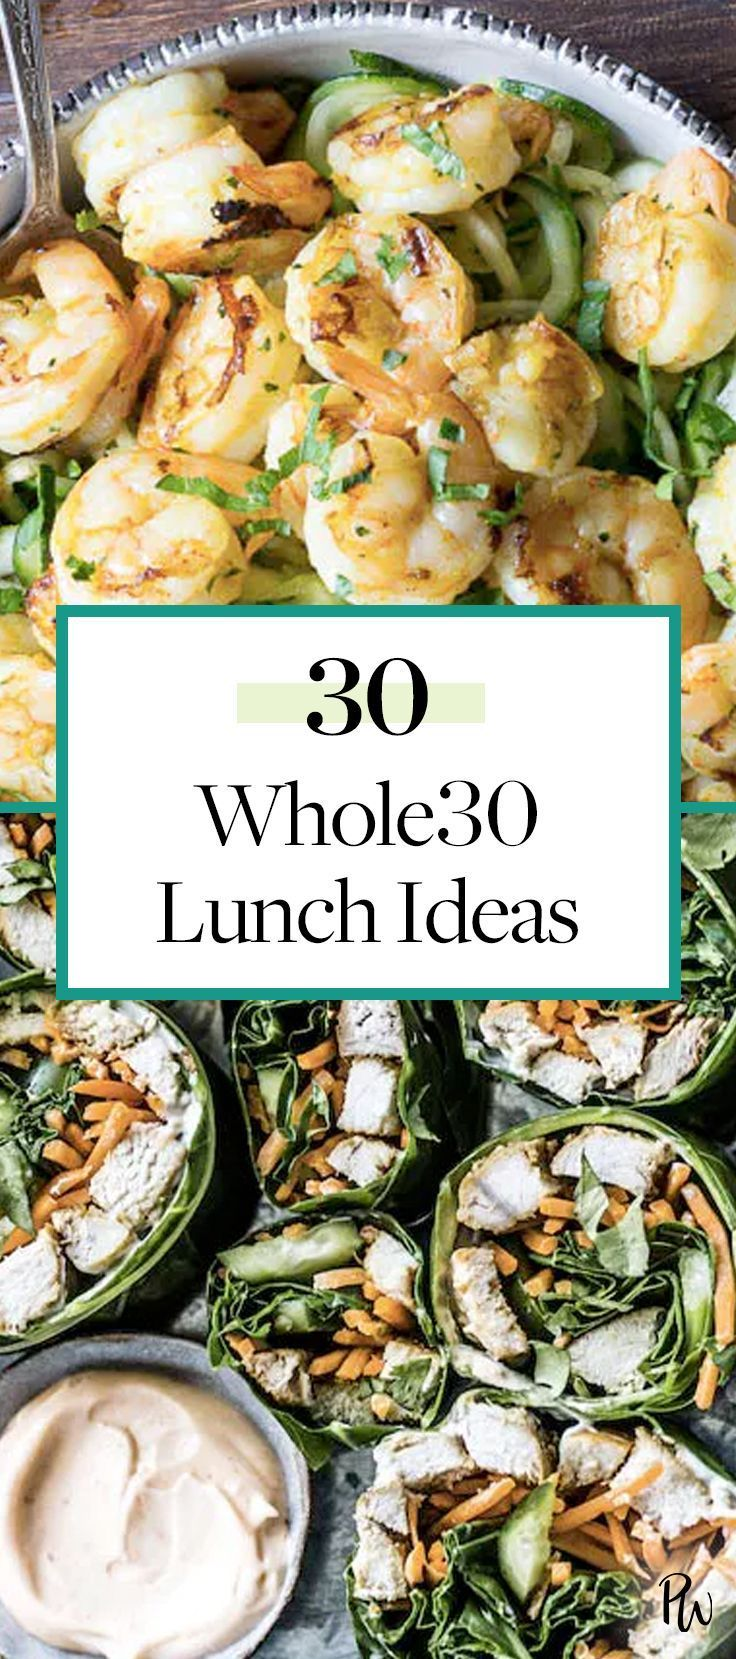 Whole30 Lunch Ideas!